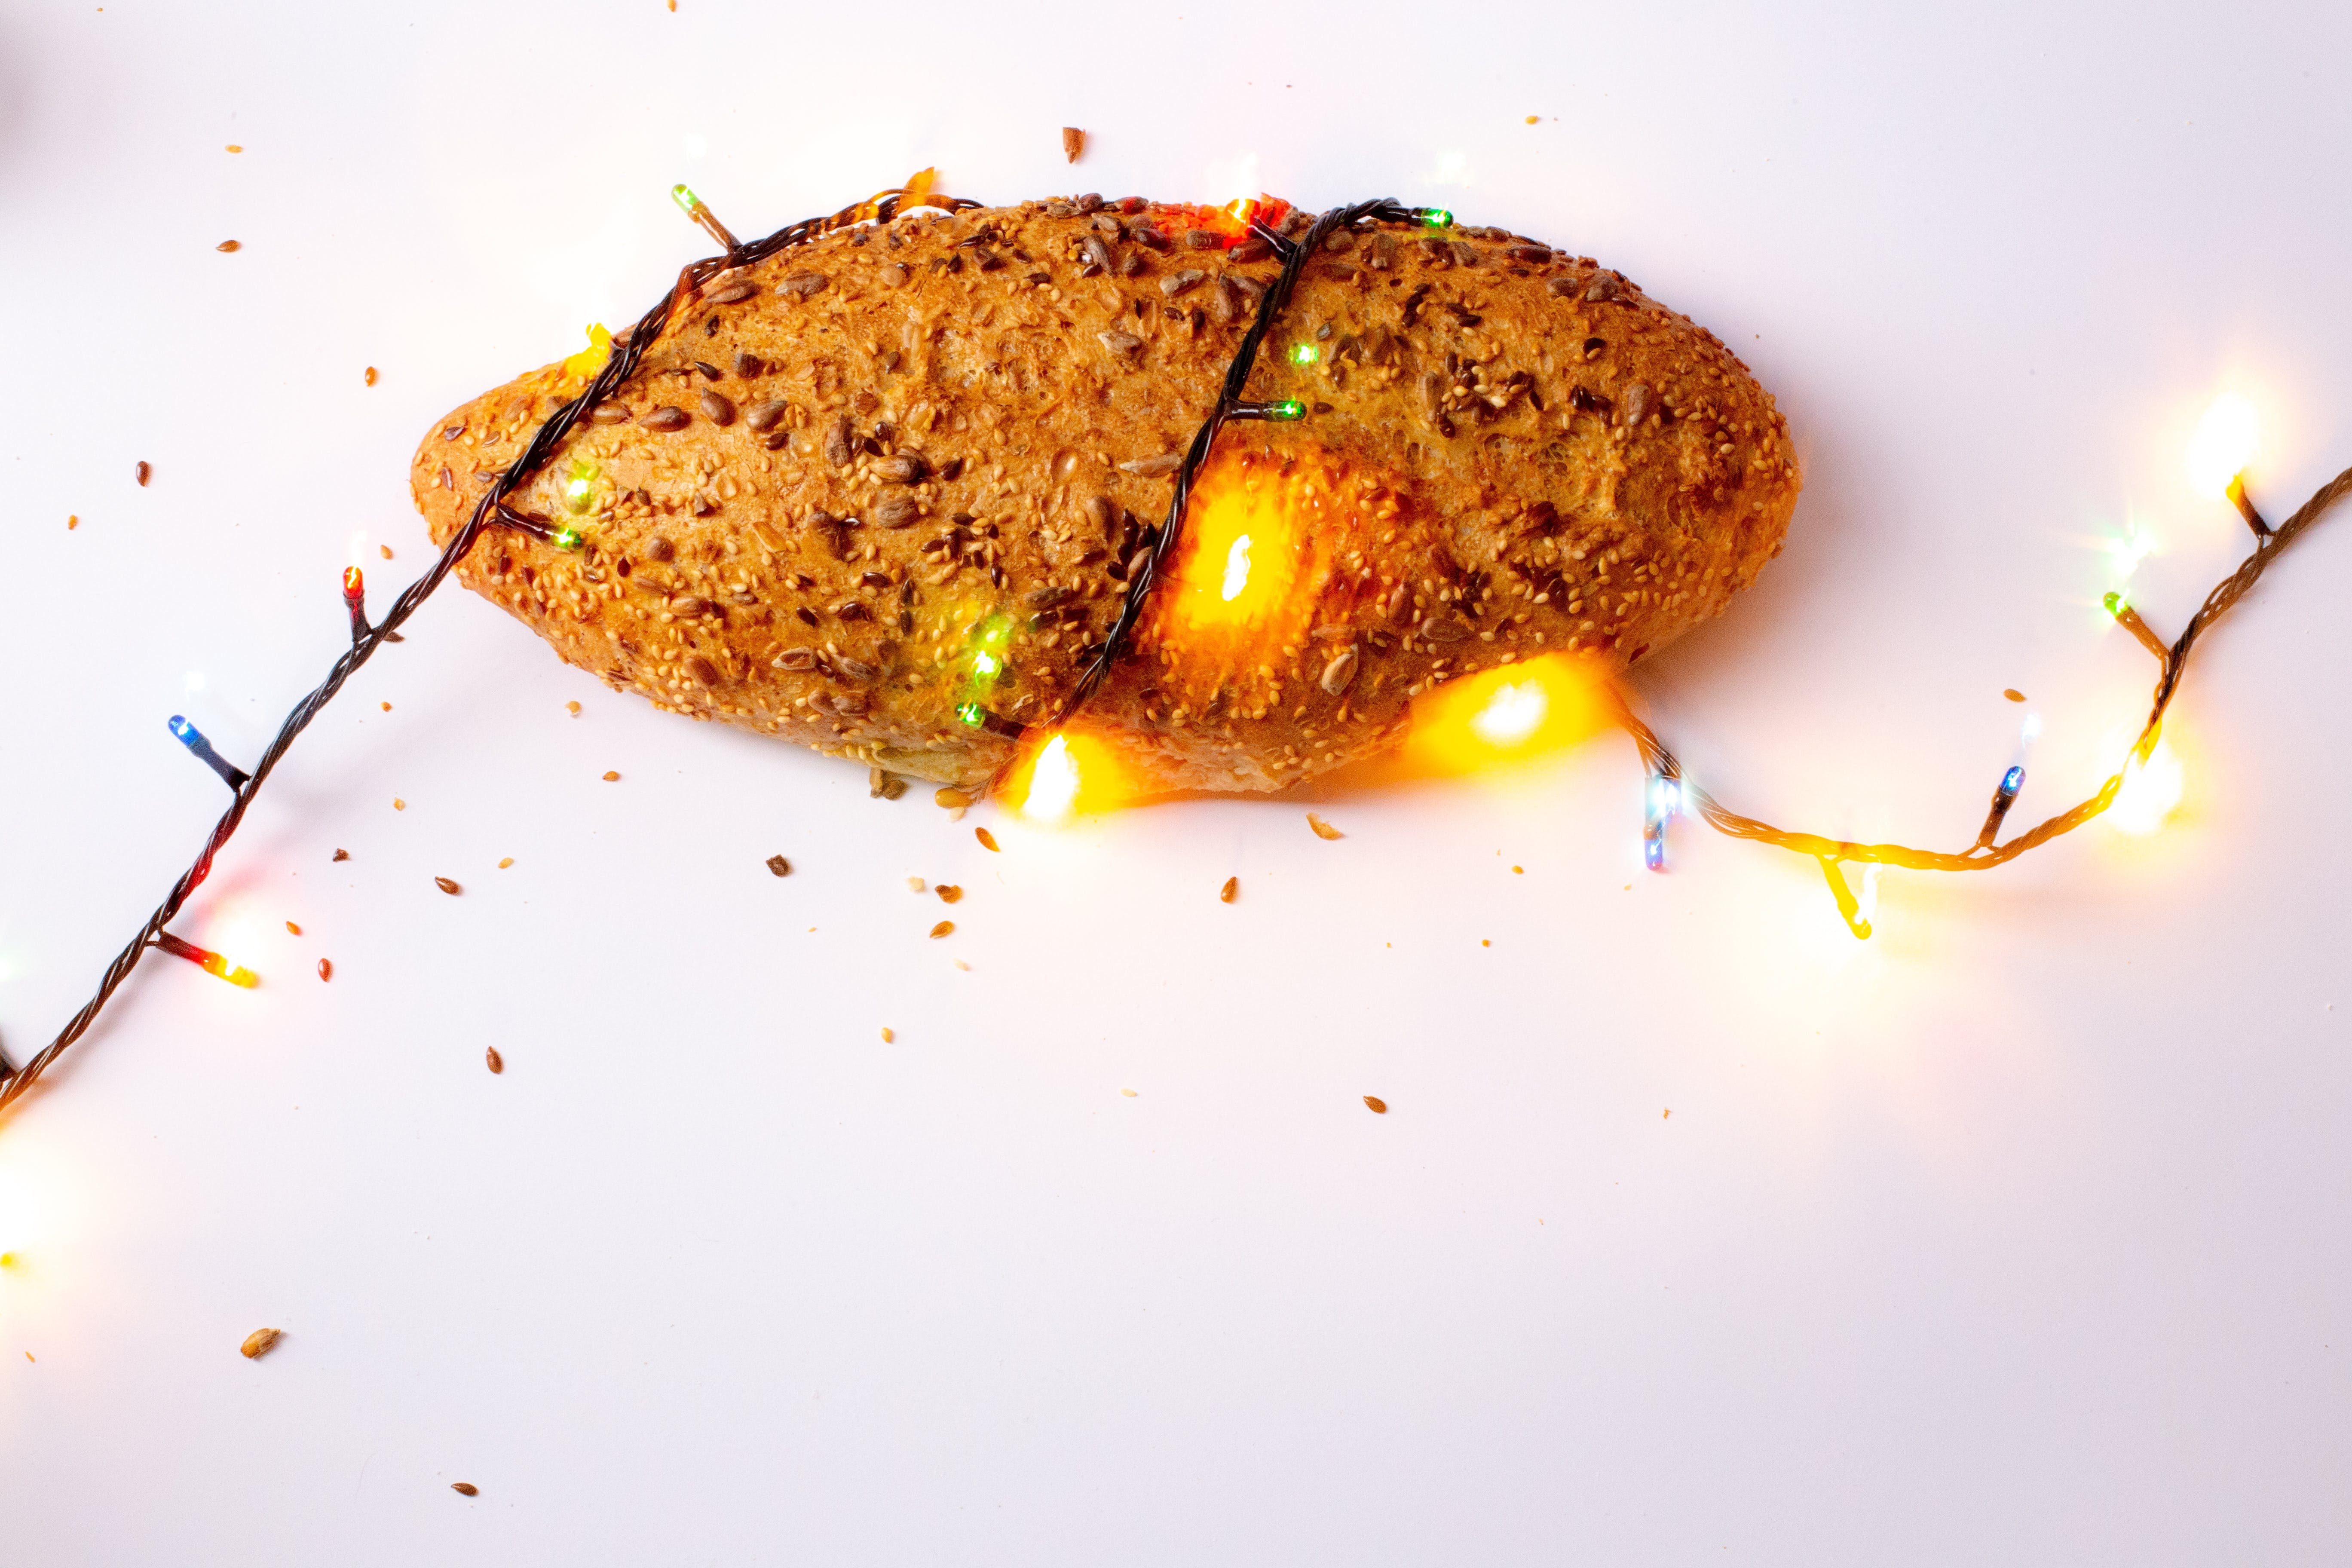 Brown Bread With String Light on White Surface